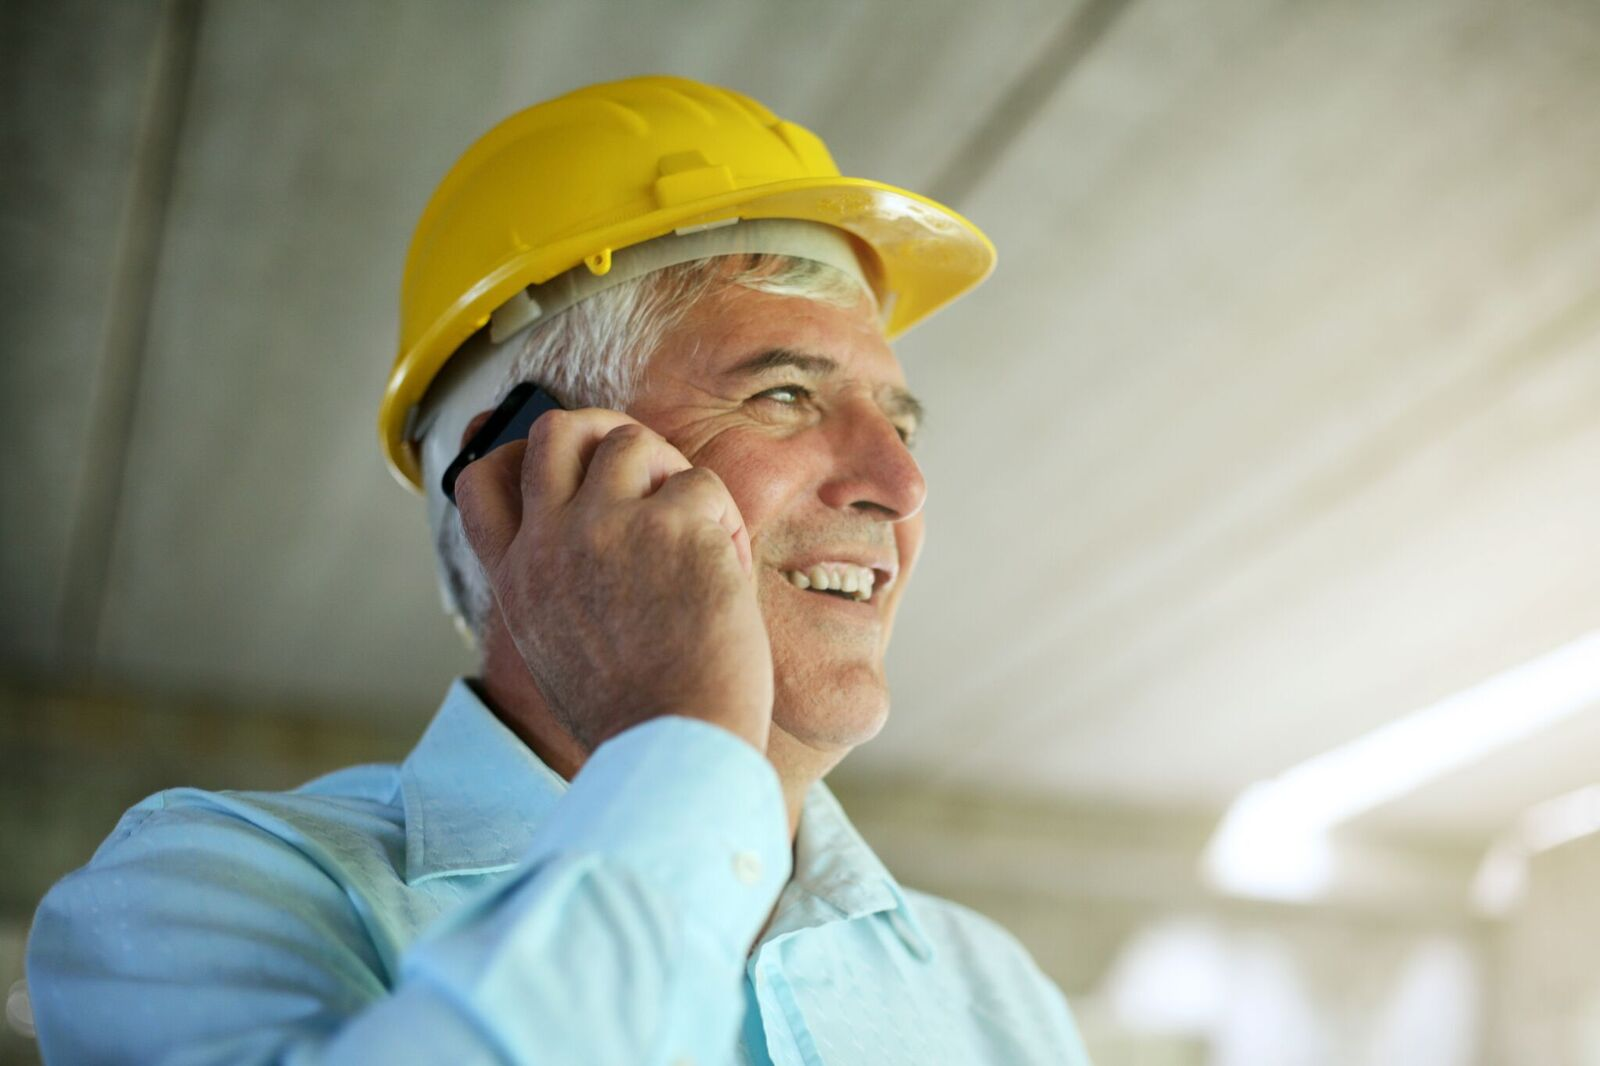 Business phone service for construction companies.